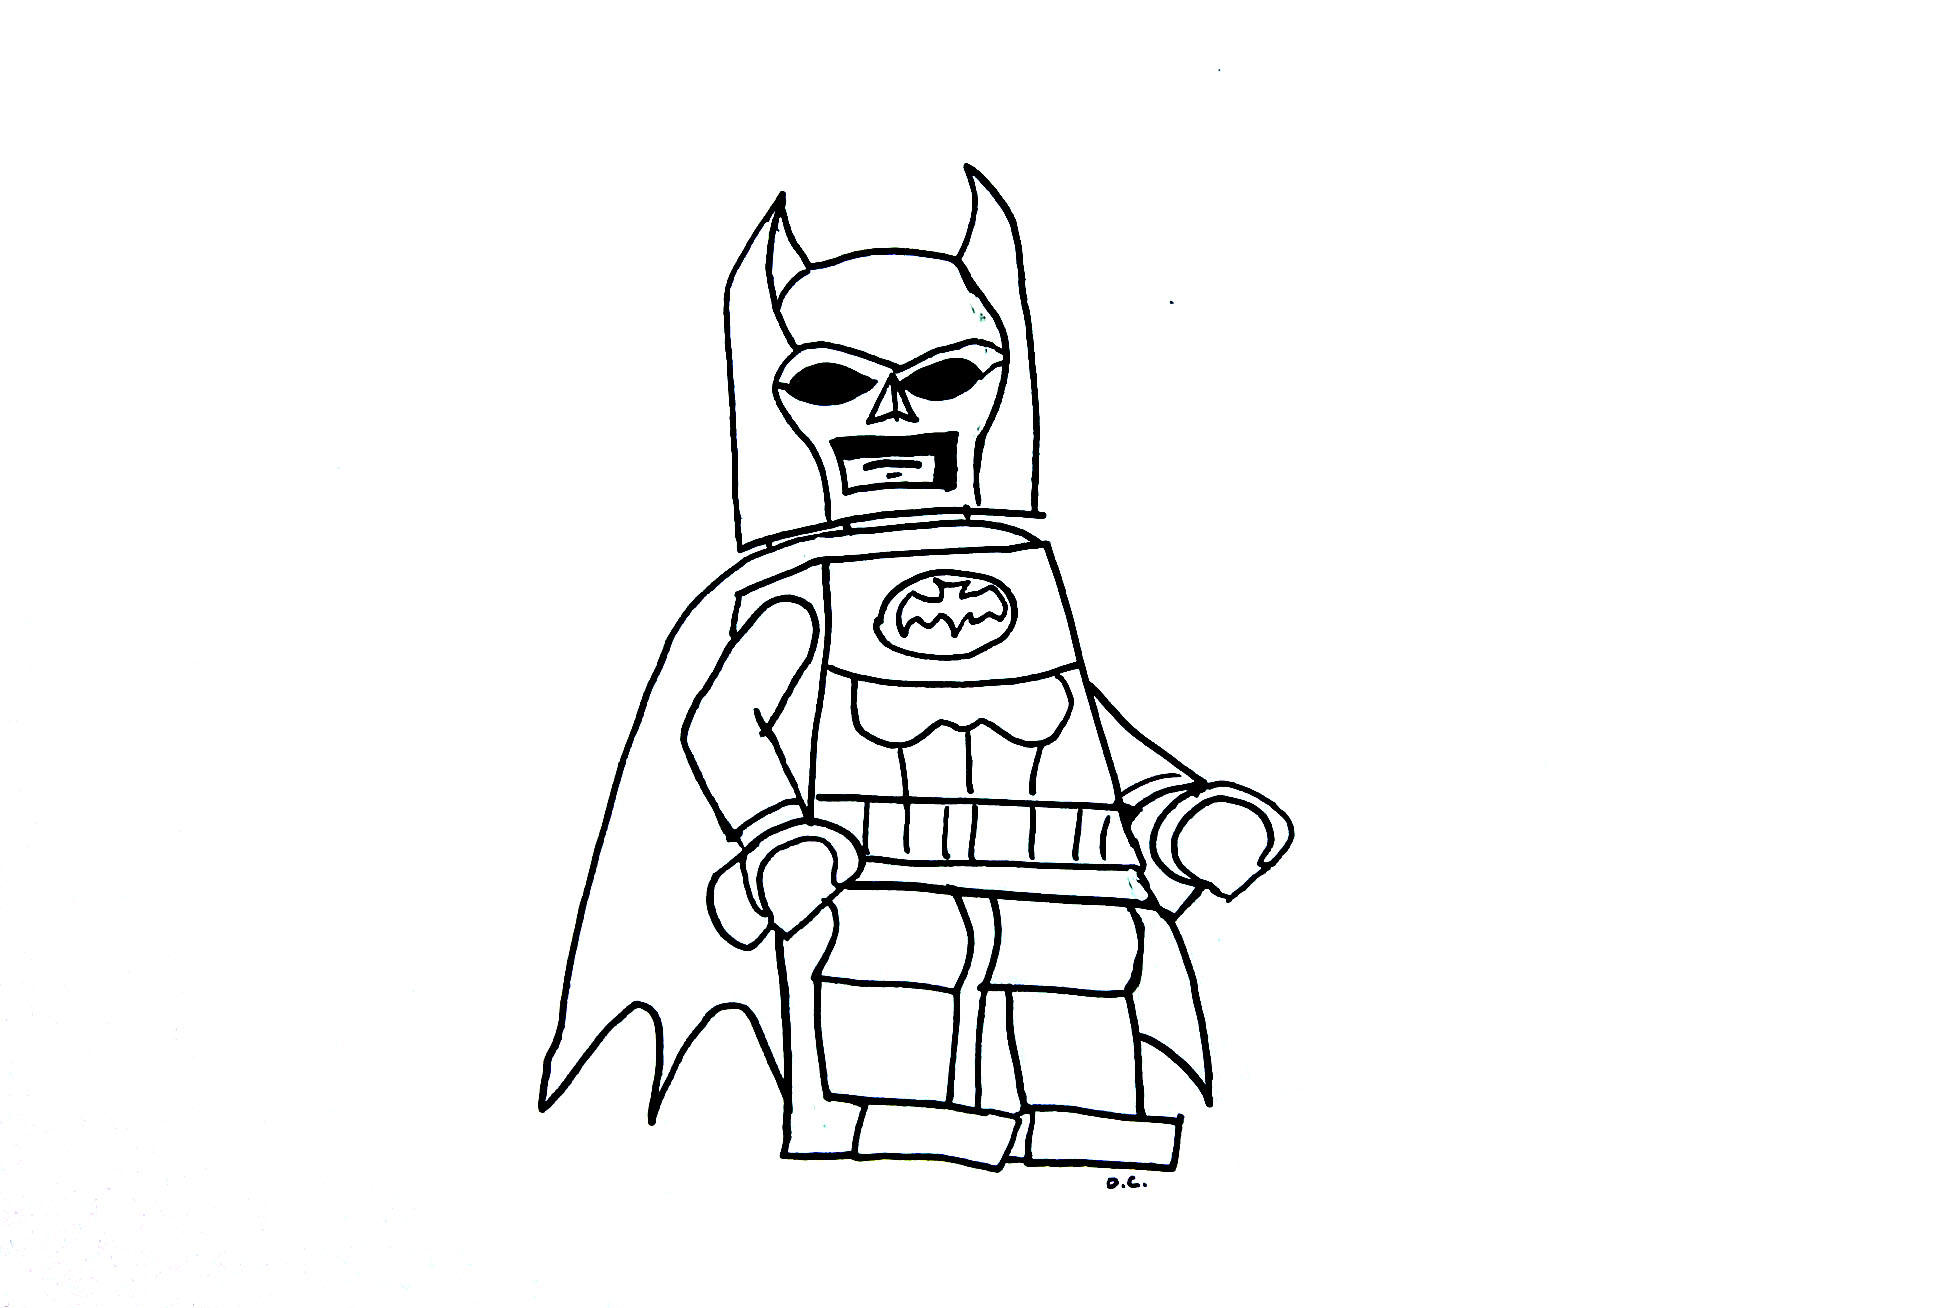 Funny free Legos coloring page to print and color